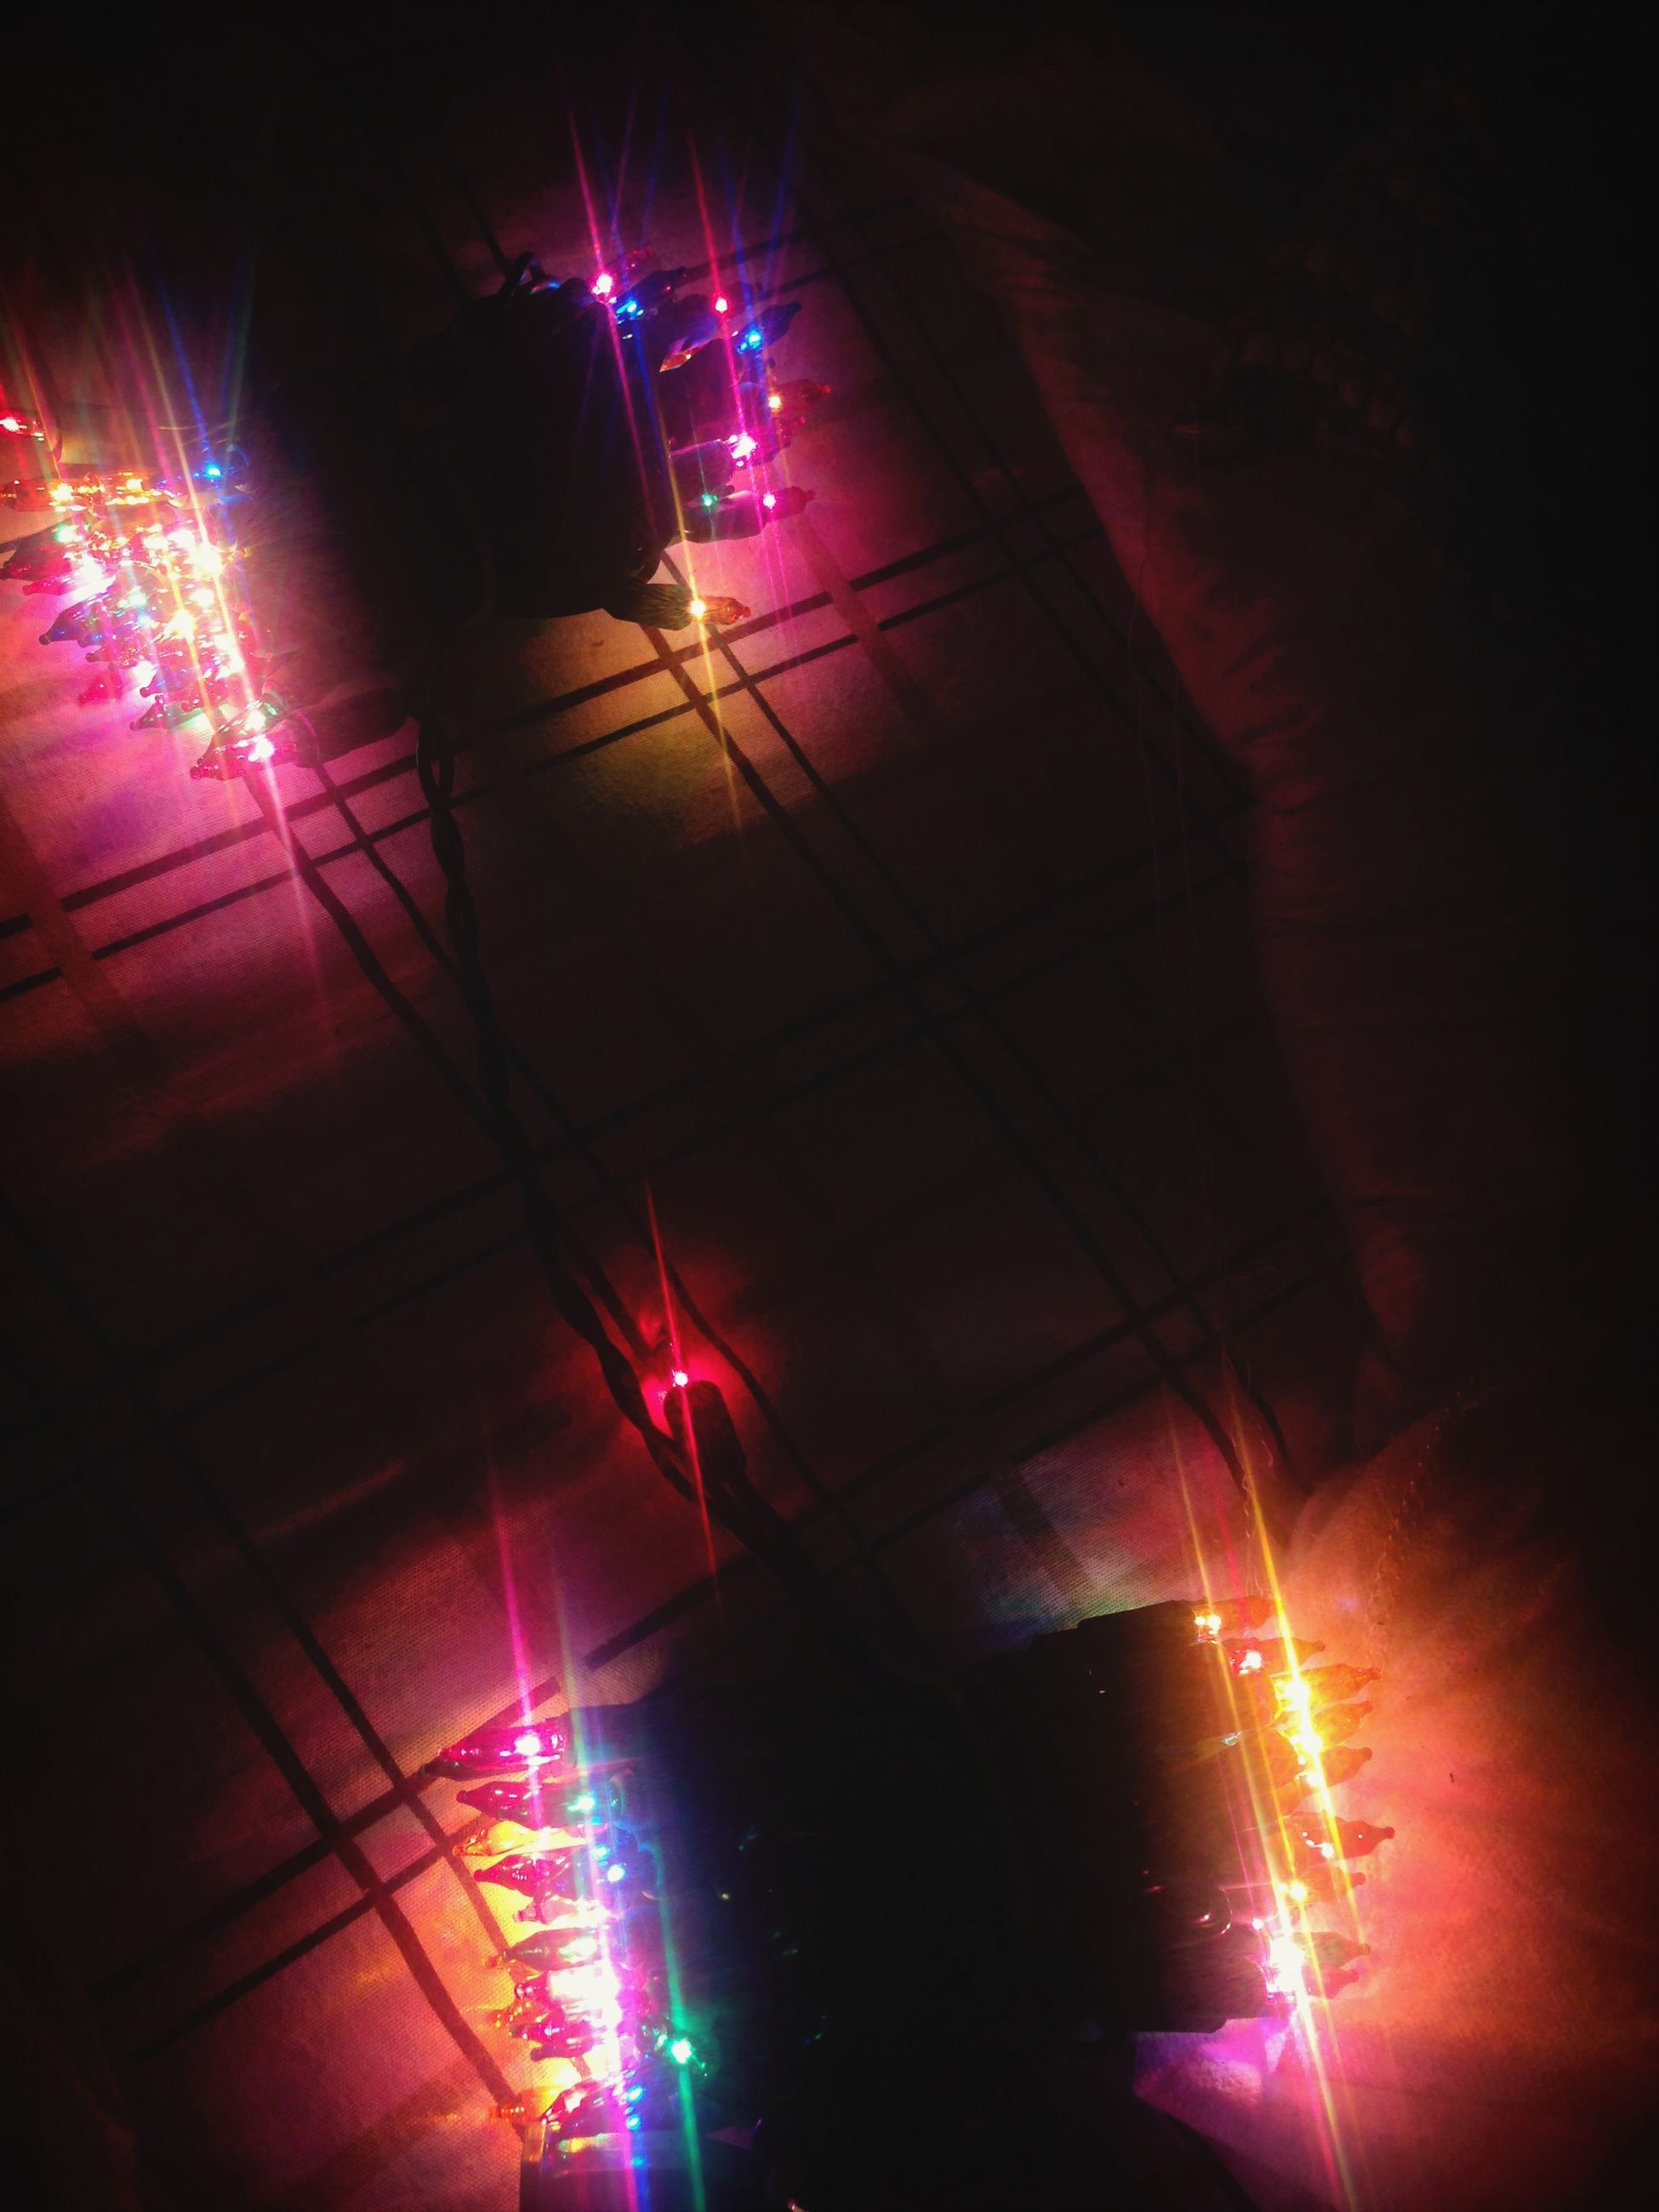 illuminated, night, lighting equipment, glowing, low angle view, light - natural phenomenon, indoors, electric light, light, decoration, electricity, built structure, dark, lit, architecture, light beam, celebration, ceiling, hanging, multi colored